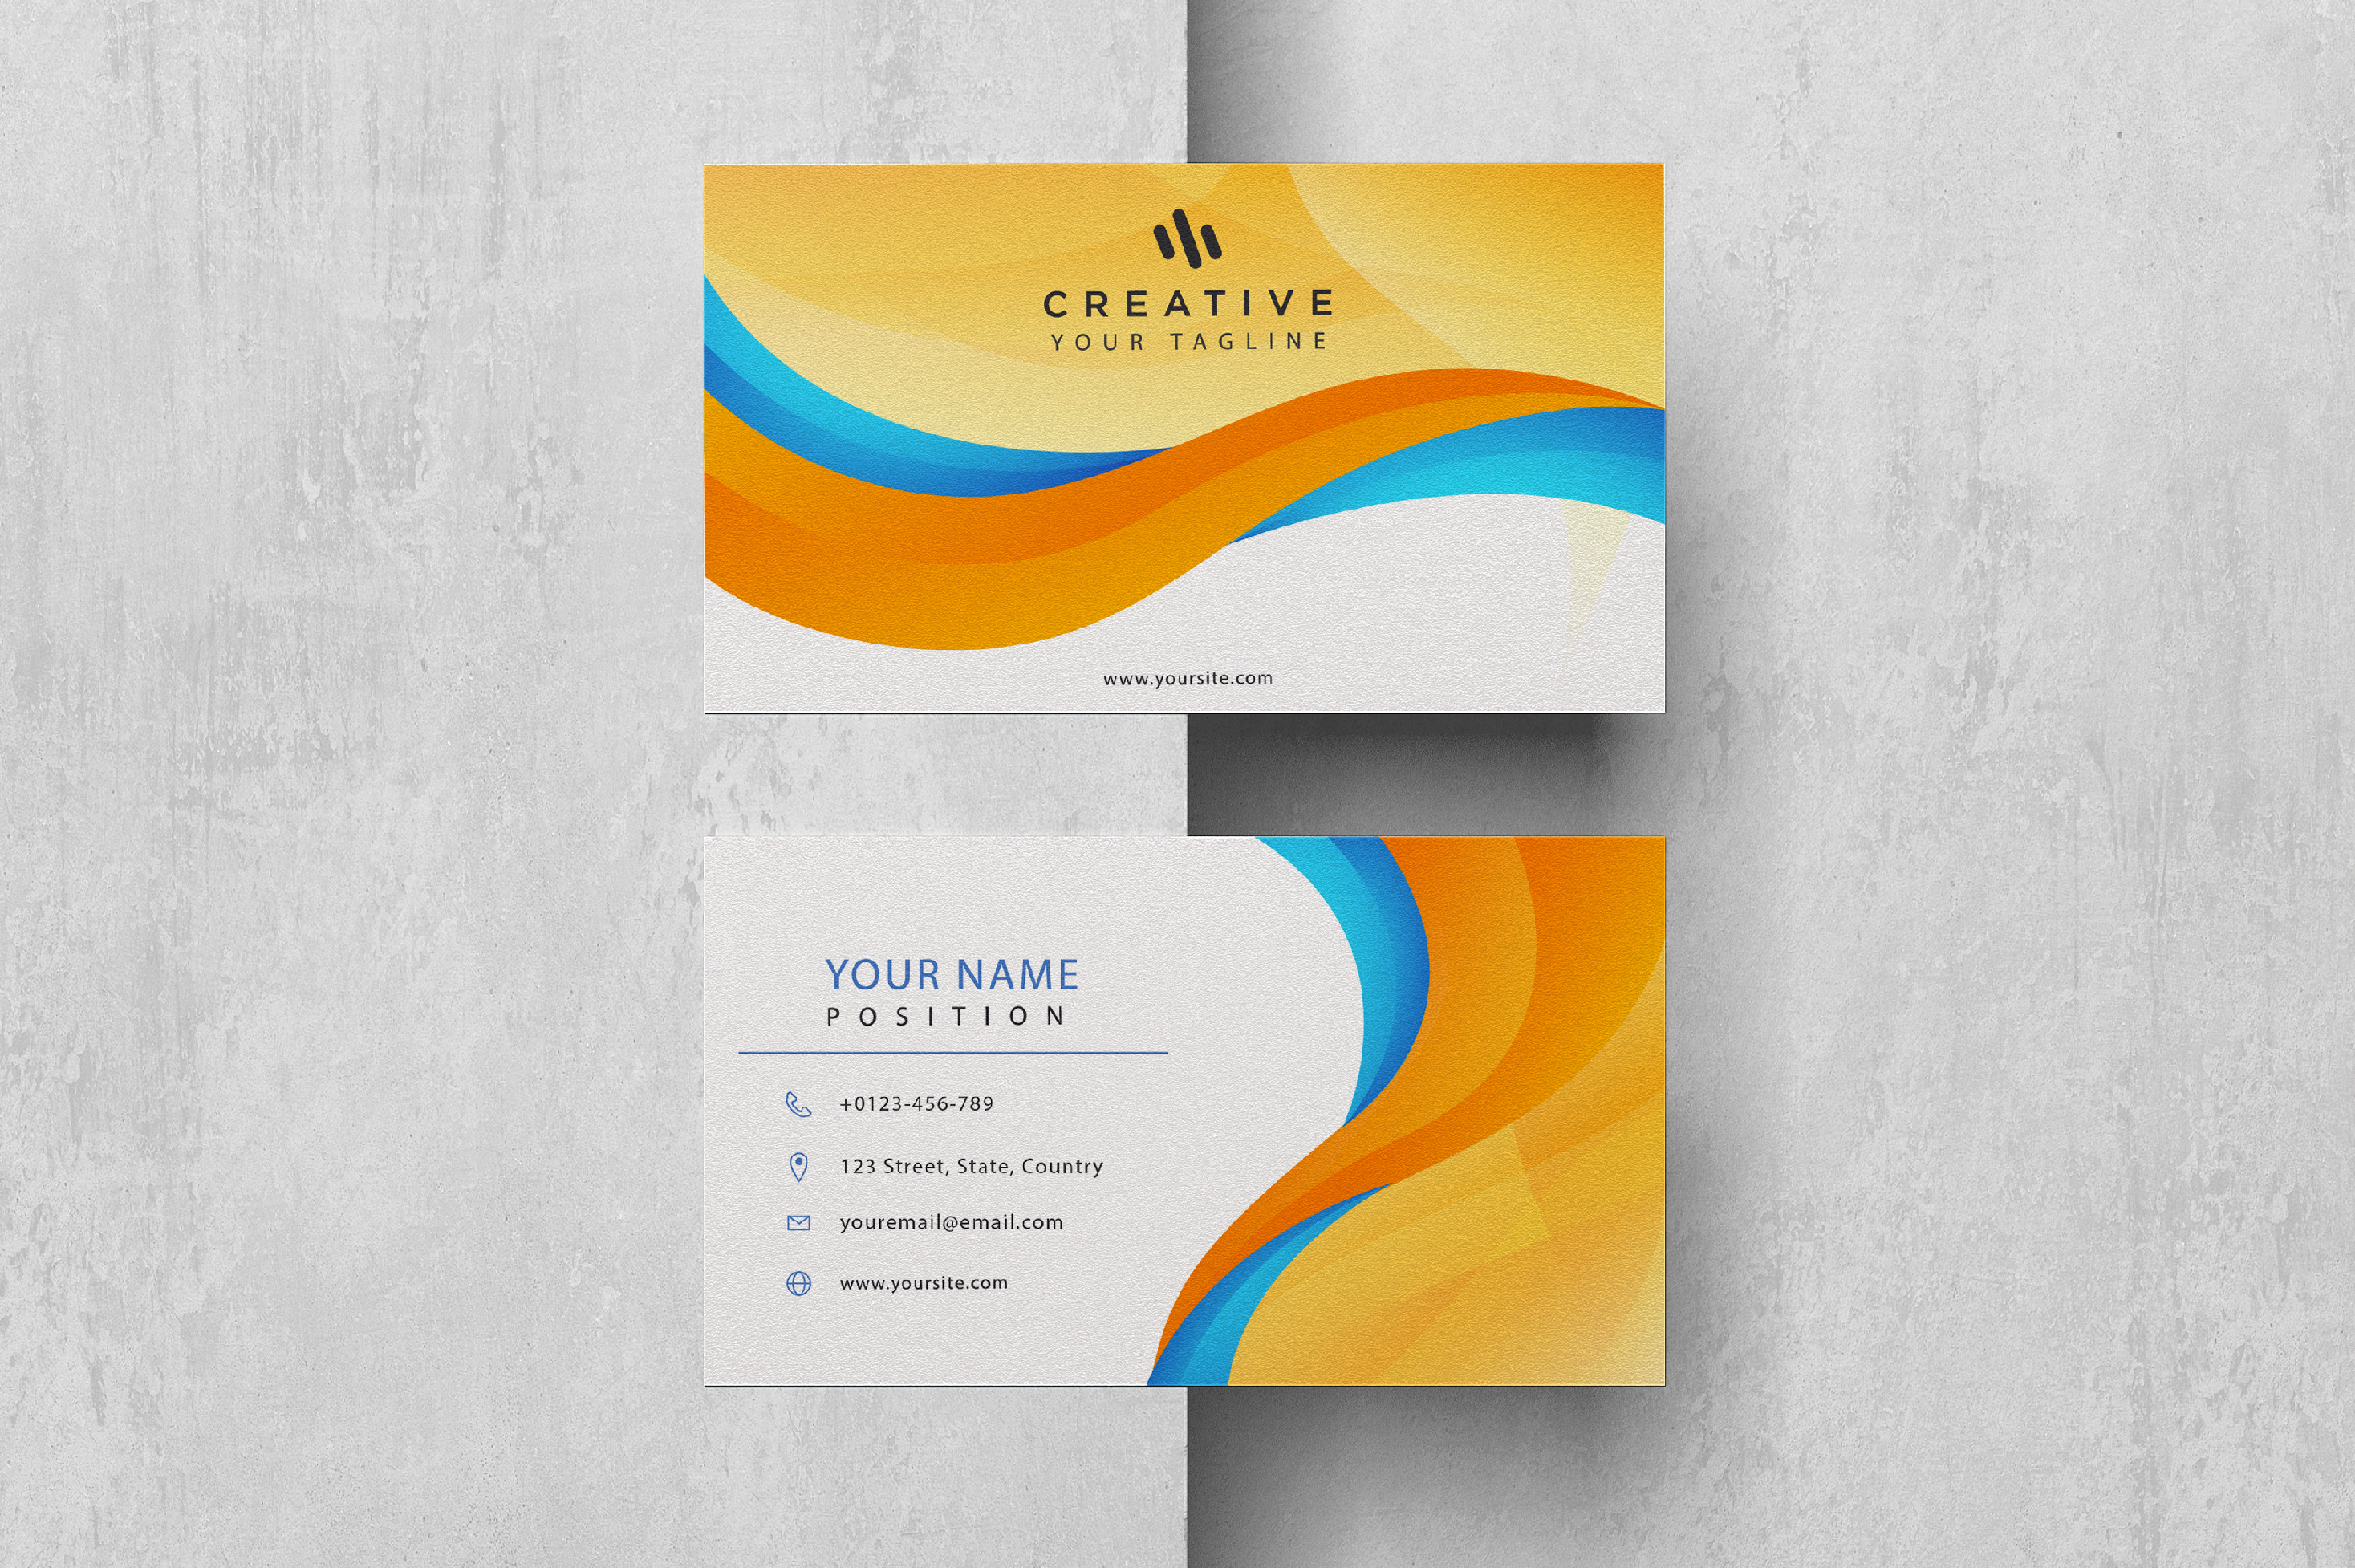 I will create professional business card design